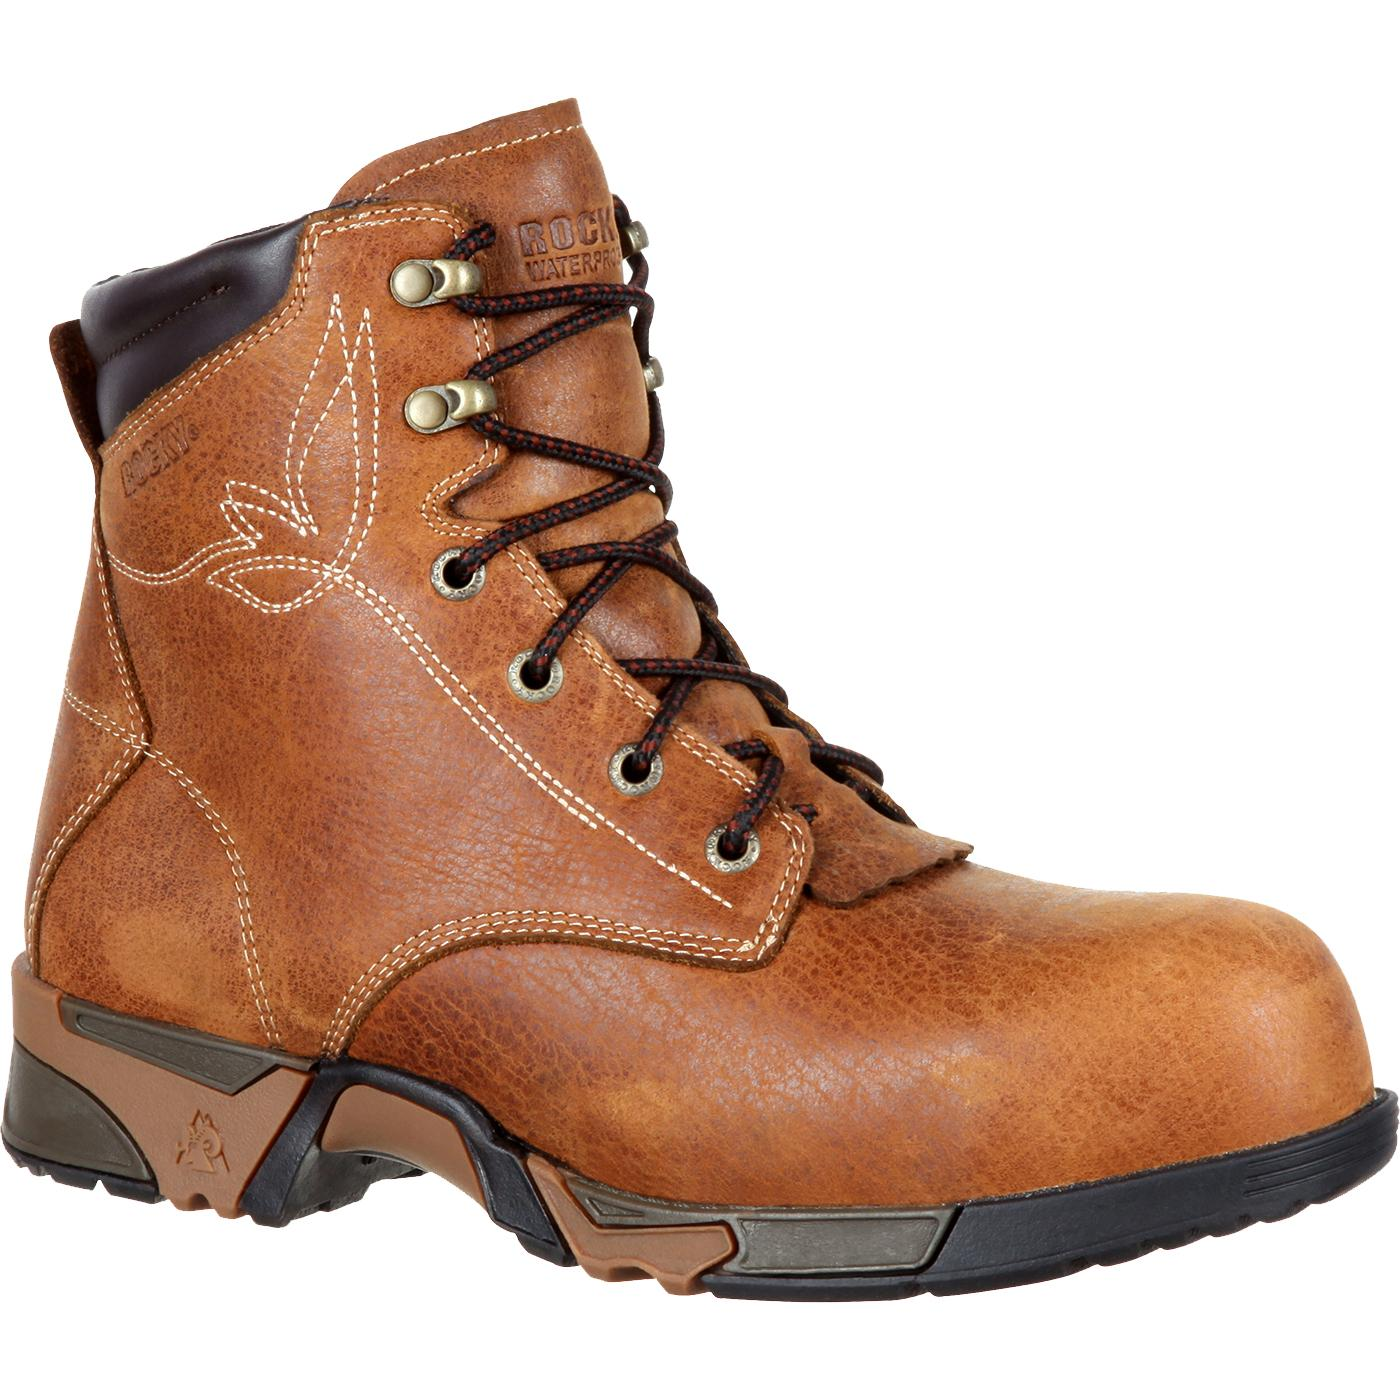 Rocky Women s Aztec Brown Lace-up Composite Toe Waterproof Work Boot ... 8e5ae1882388